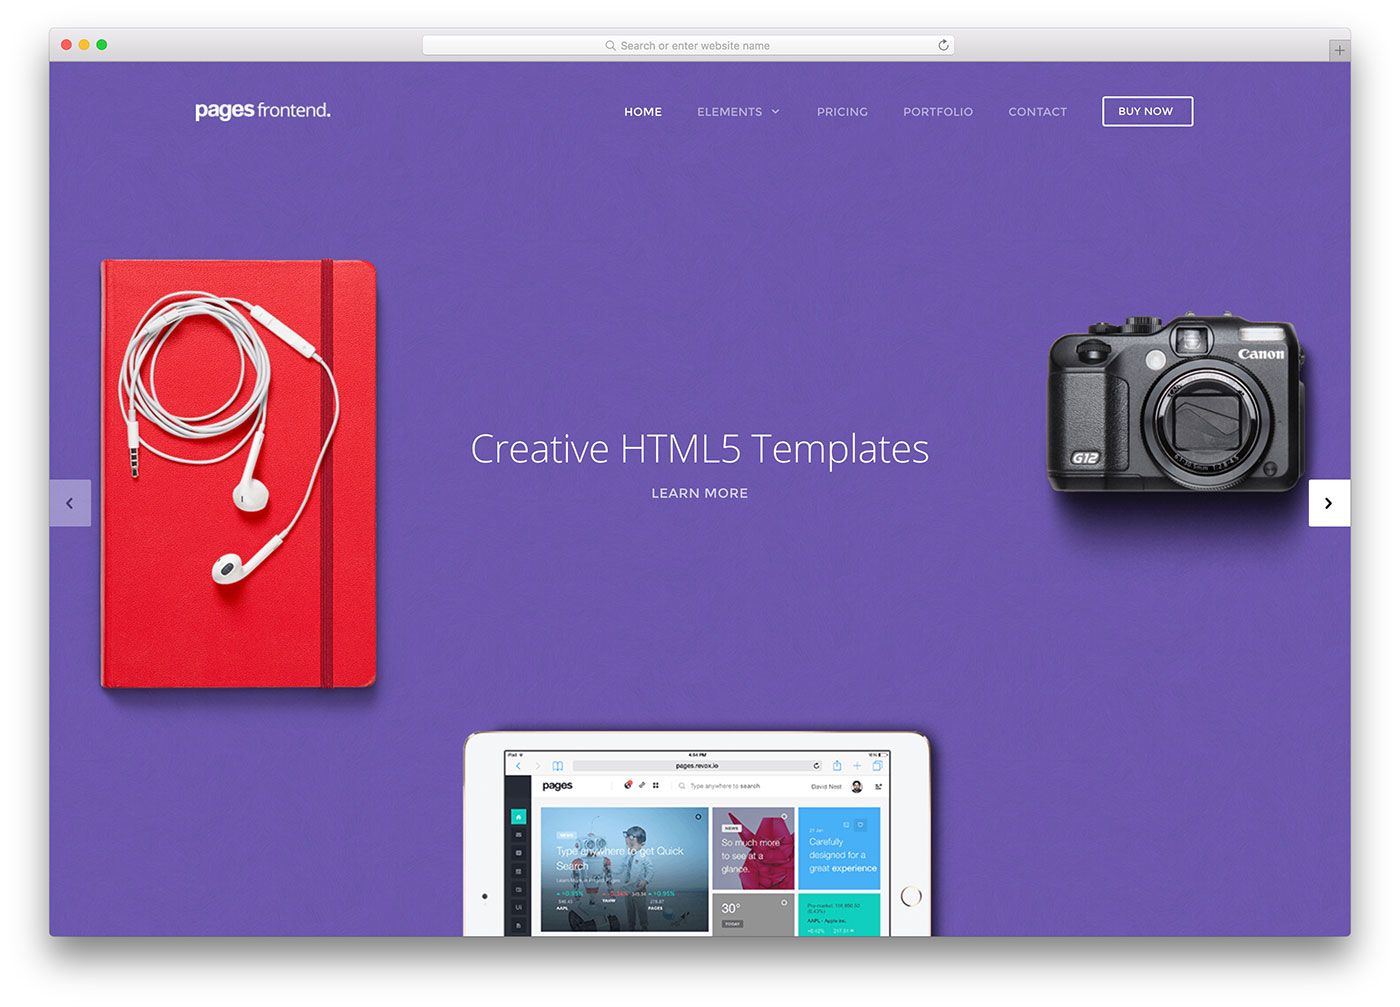 36 creative html5css3 website templates 2018 colorlib 36 creative html5css3 website templates to create unique websites 2018 maxwellsz